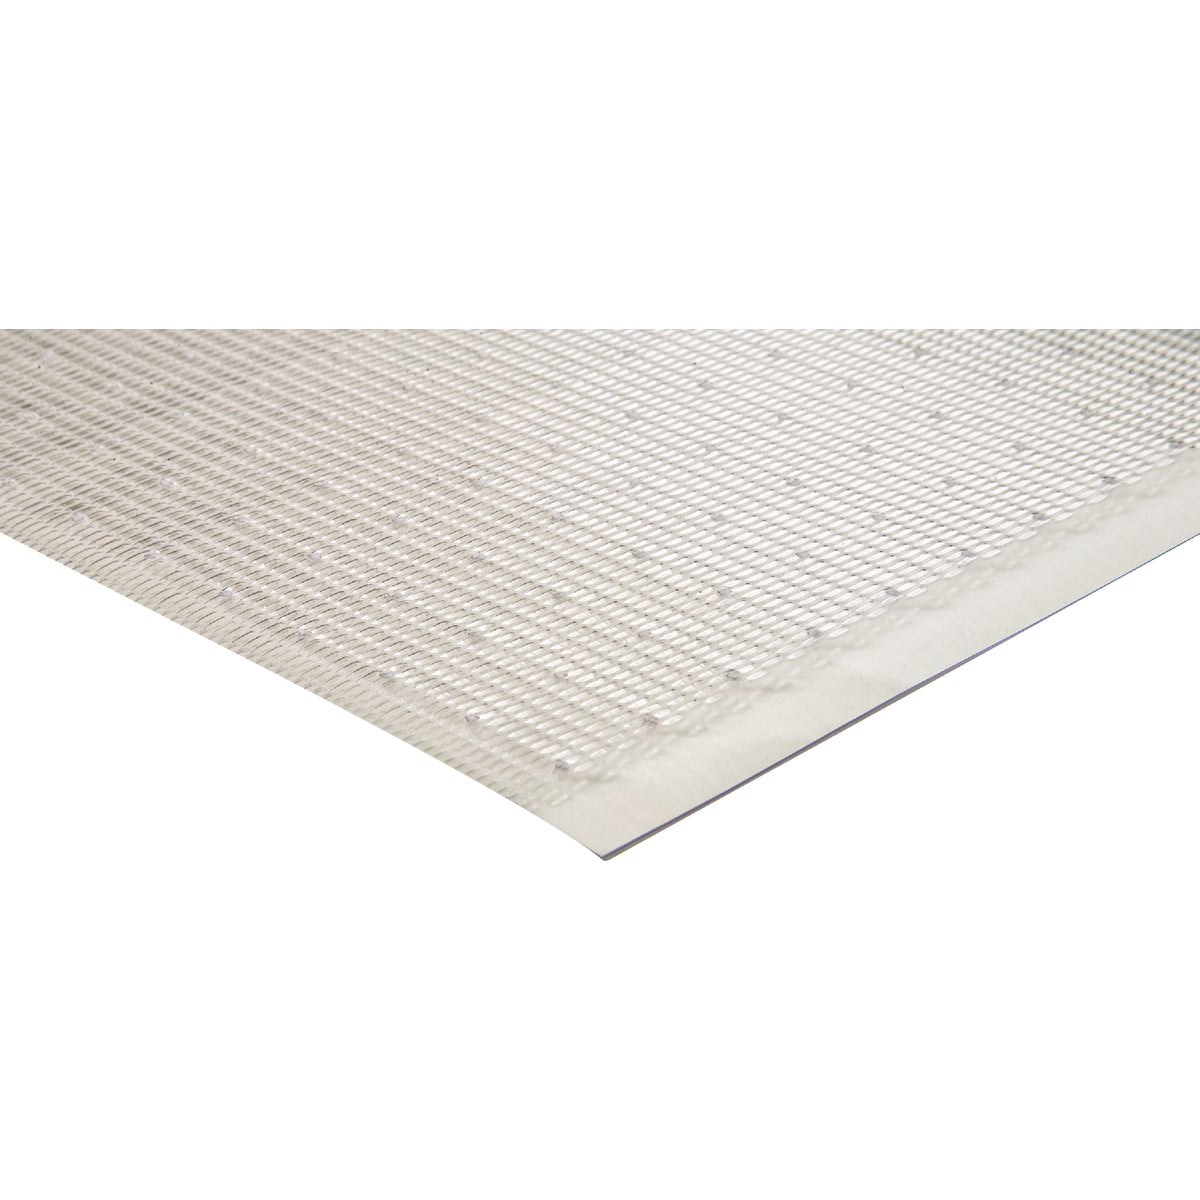 27X100 DEC CPT PROTECTOR - 4487-14672-27100 by Mohawk Home Products